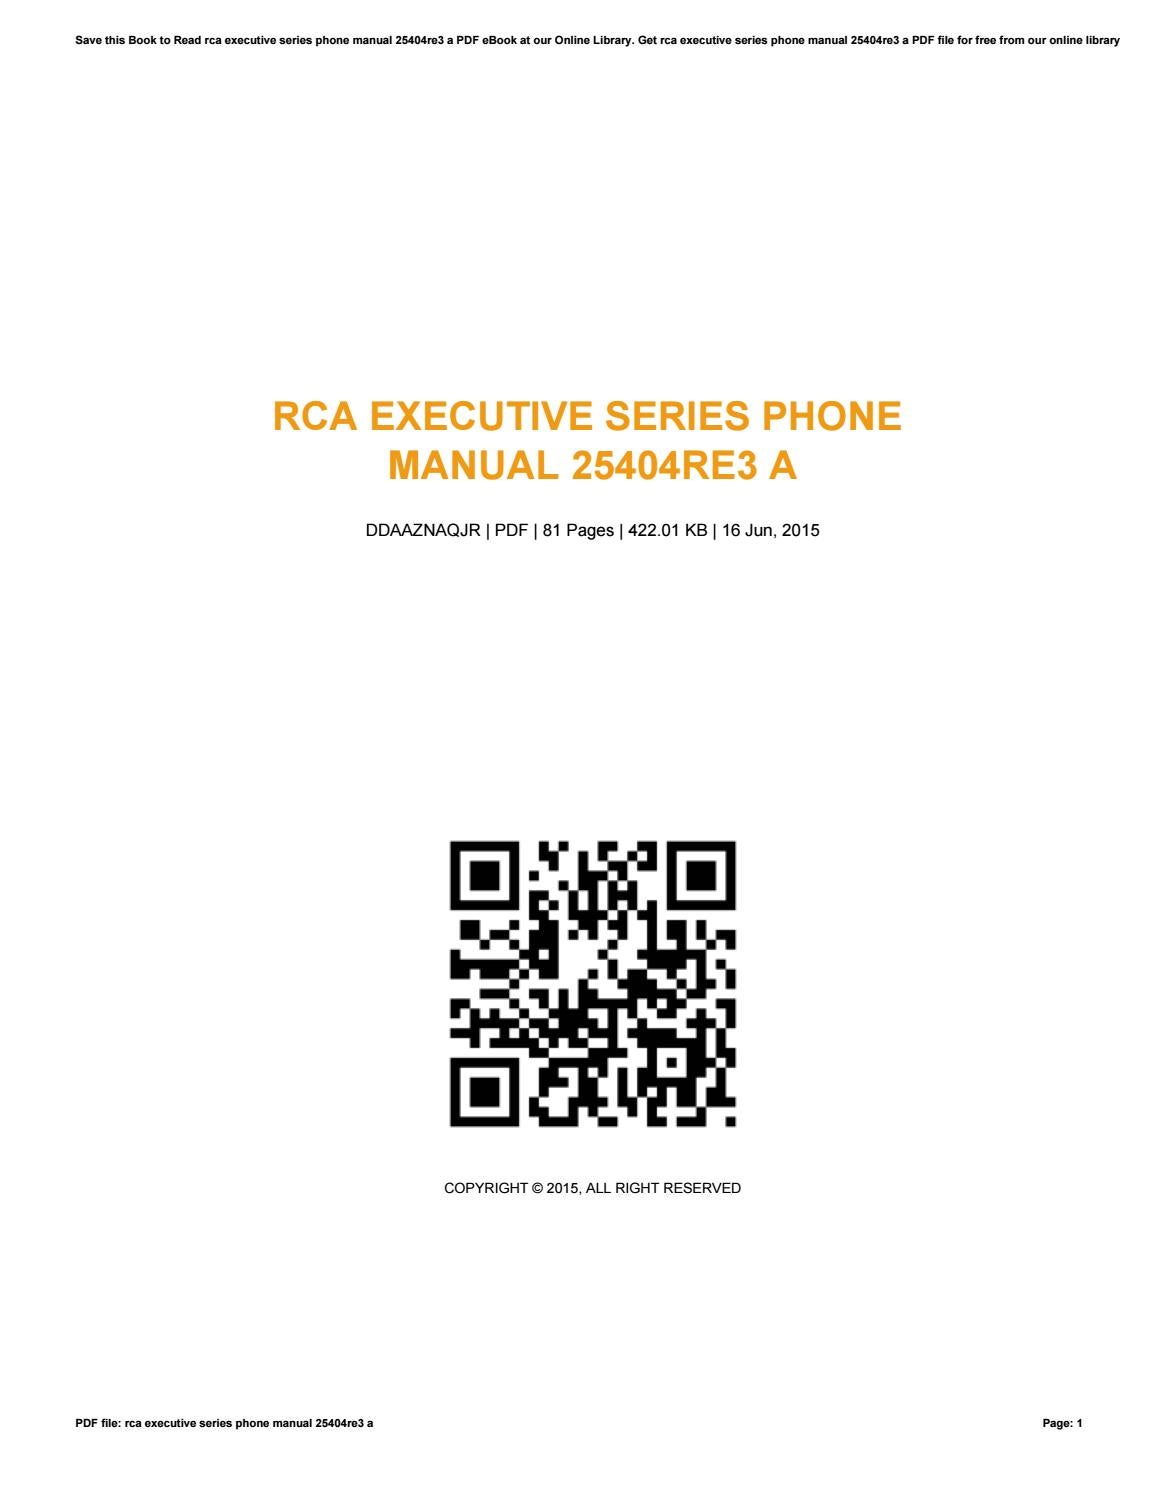 Rca executive series phone manual 25404re3 a by caseedu37